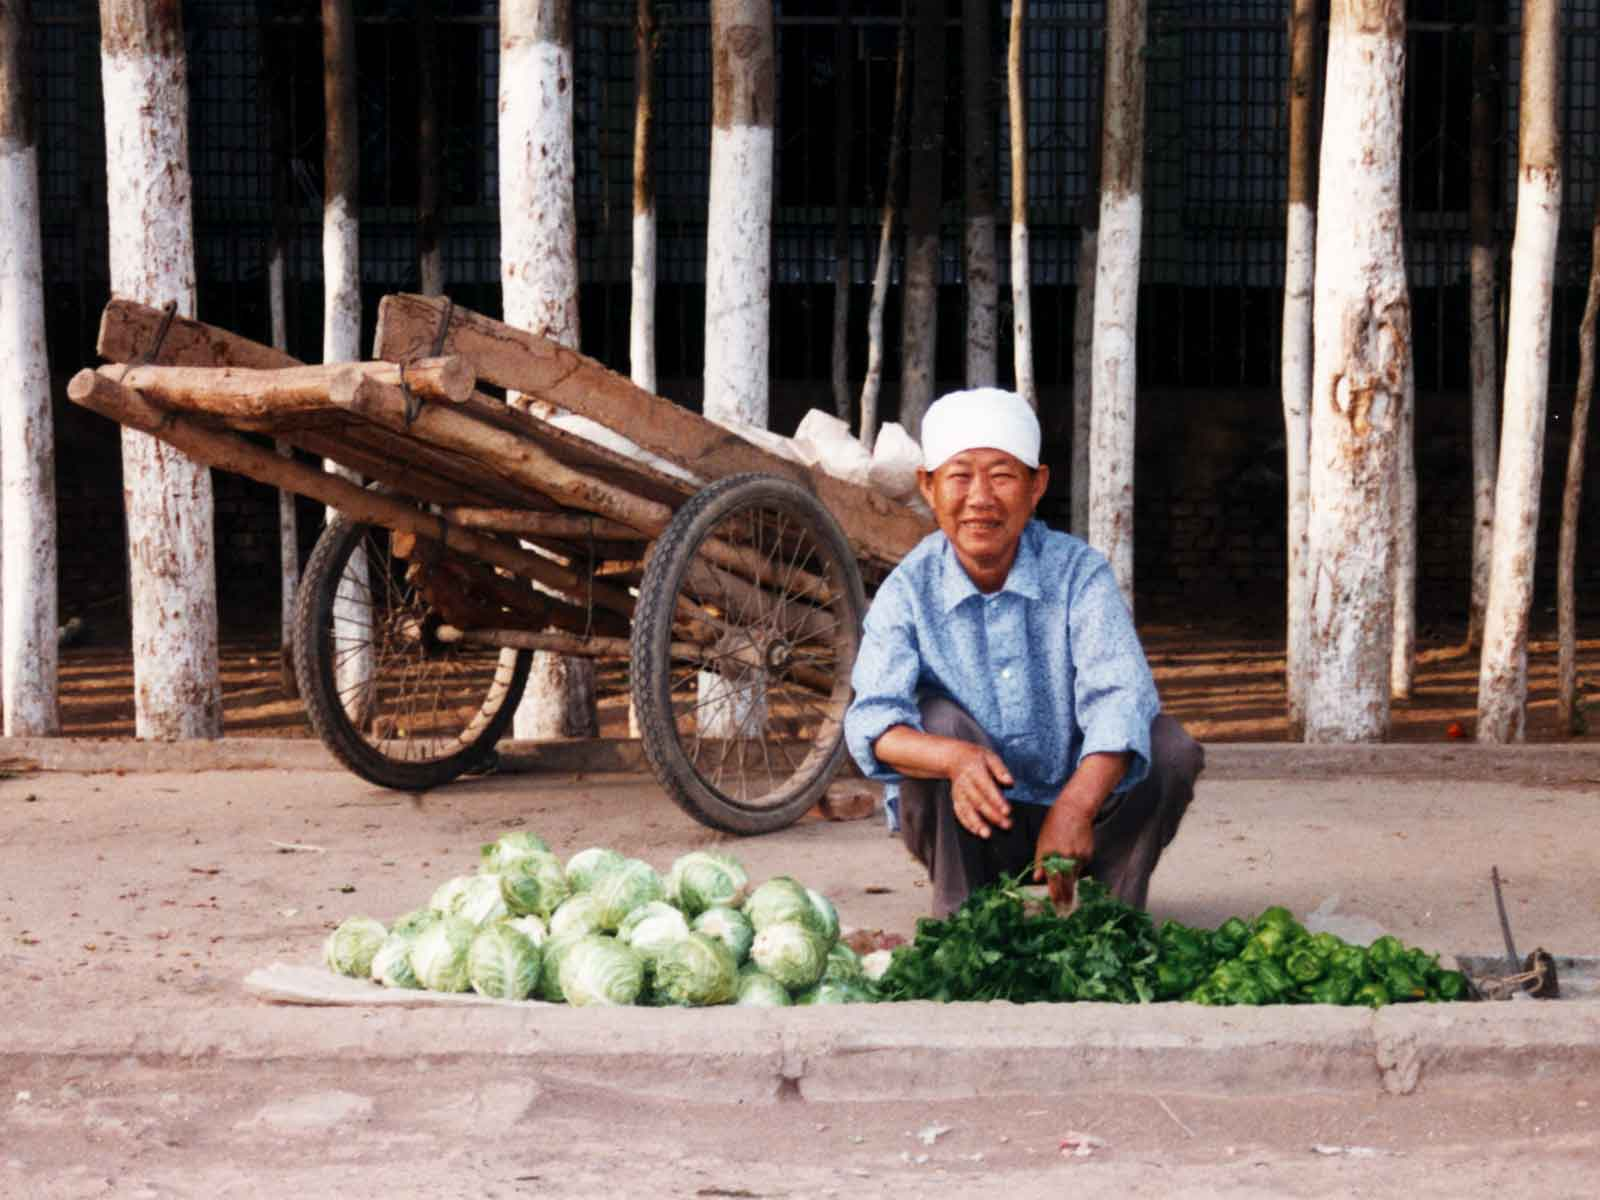 Turpan farmer - Xinjiang - Chinese Silk Road Photo Journal - 1995 University of Hawaii Culture Study Tour - Steven Andrew Martin